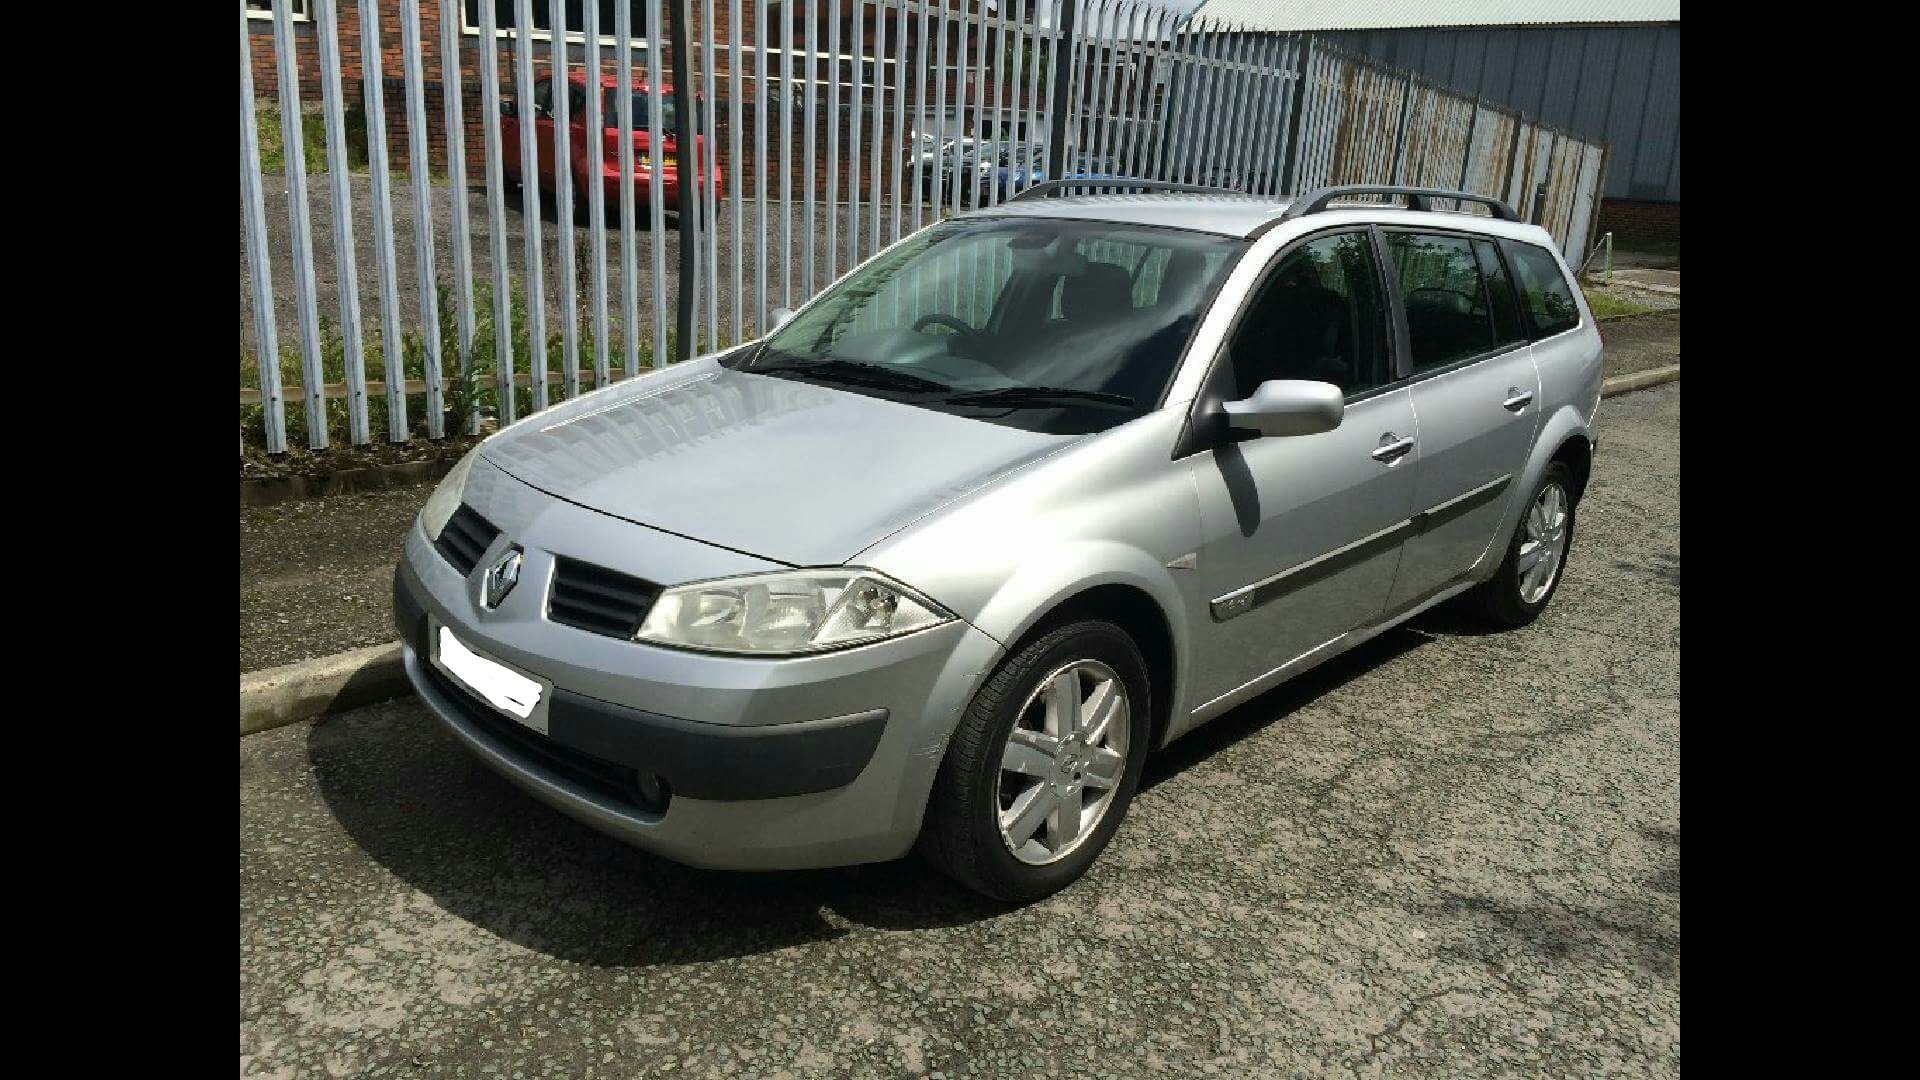 hight resolution of renault megane 05 spark plug and coil replacement